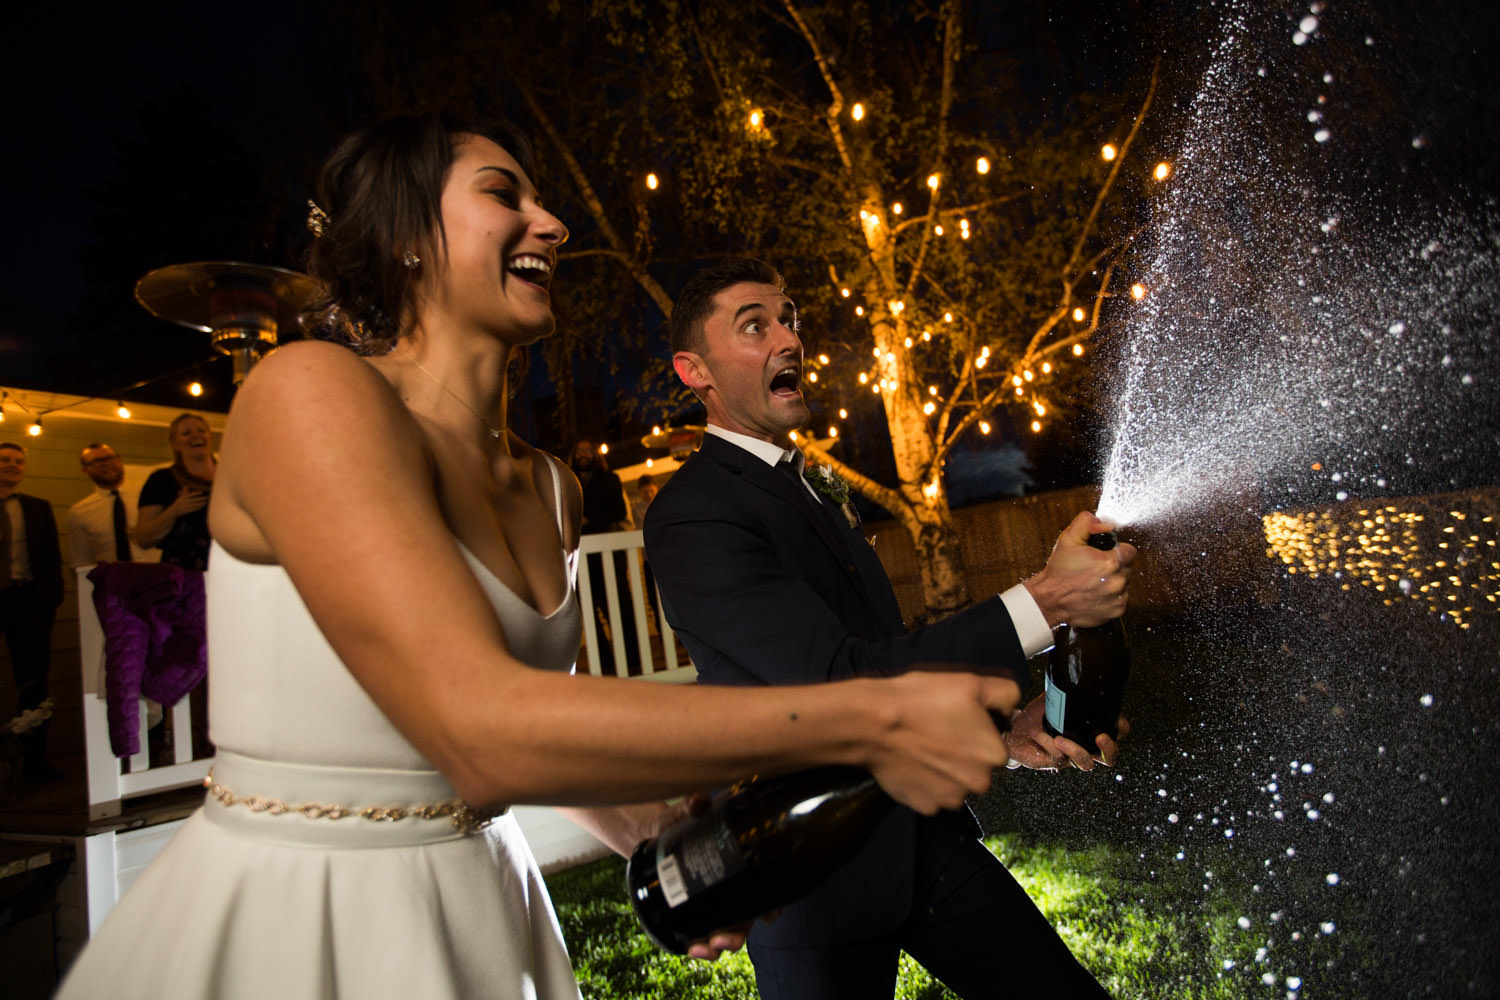 popping champagne bride and groom backyard wedding